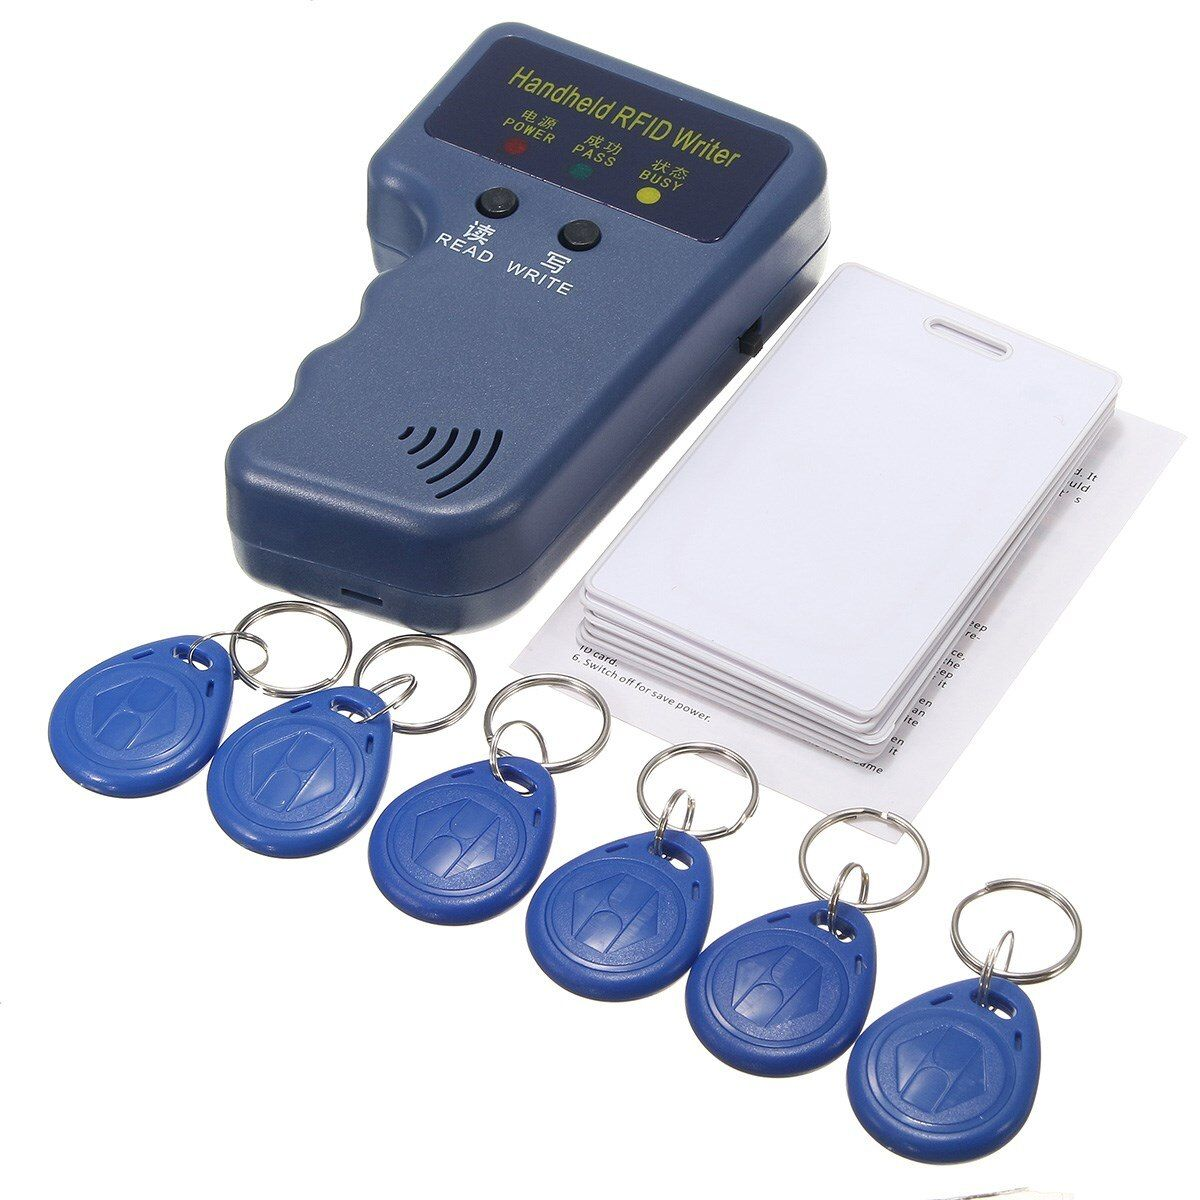 NEW 13Pcs 125Khz Handheld RFID ID Card Copier/ Reader/Writer Duplicator Programmer6 Pcs Writable Tags+6 Pcs Cards